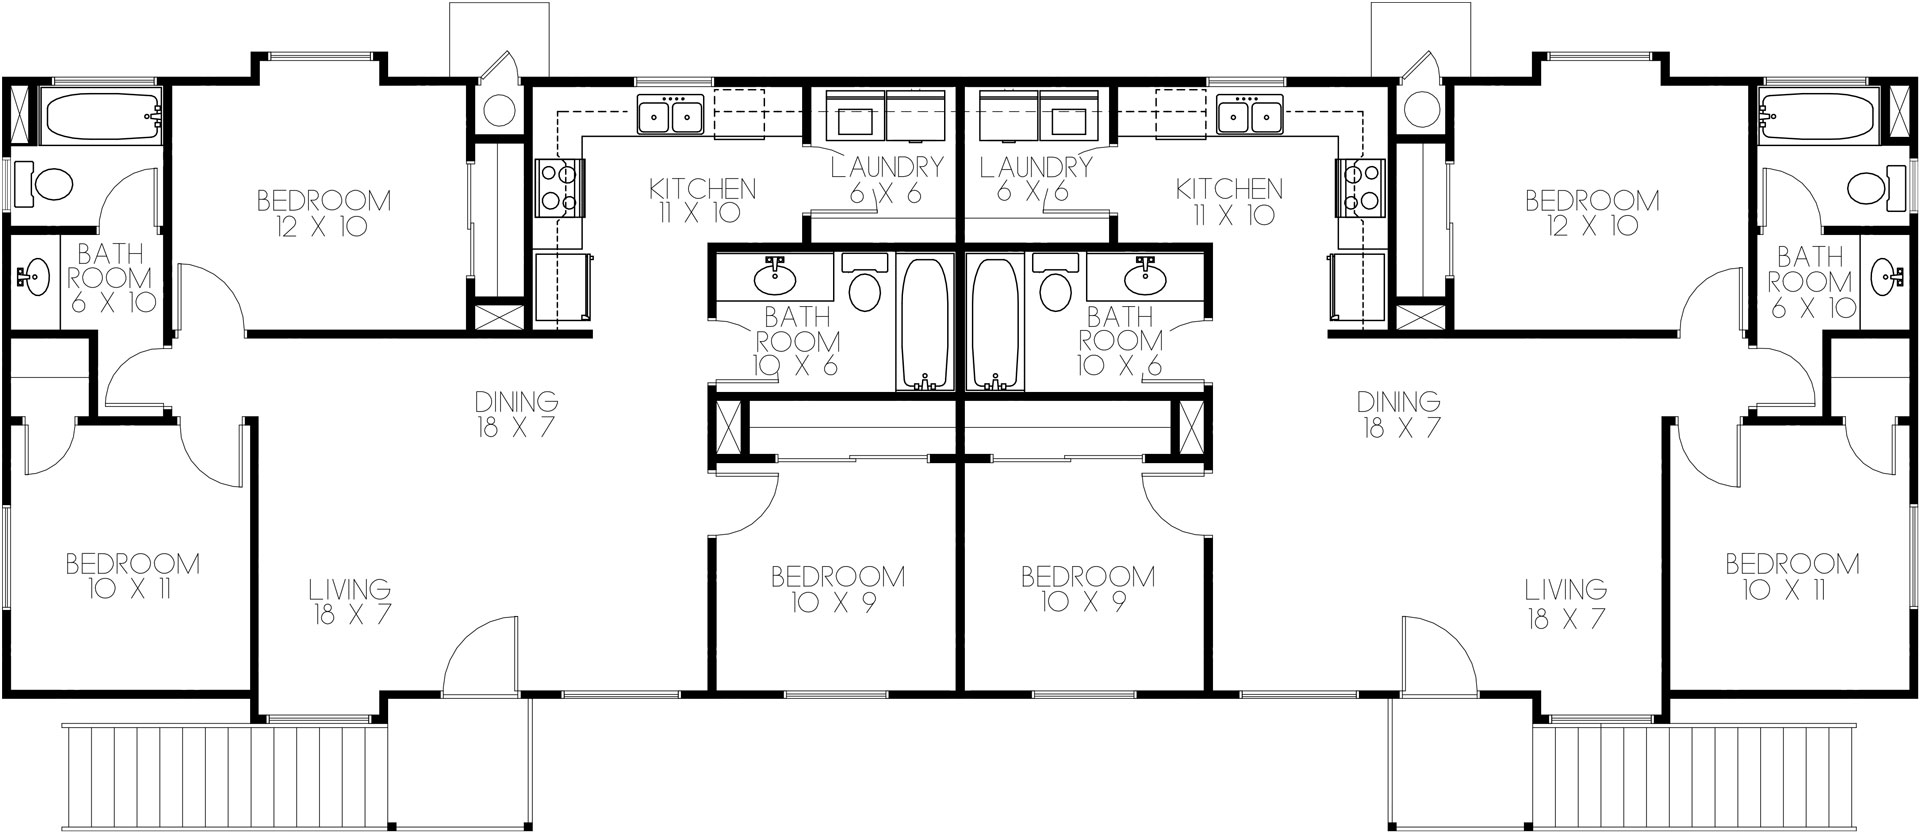 M32 972 for How to make building plans for permit